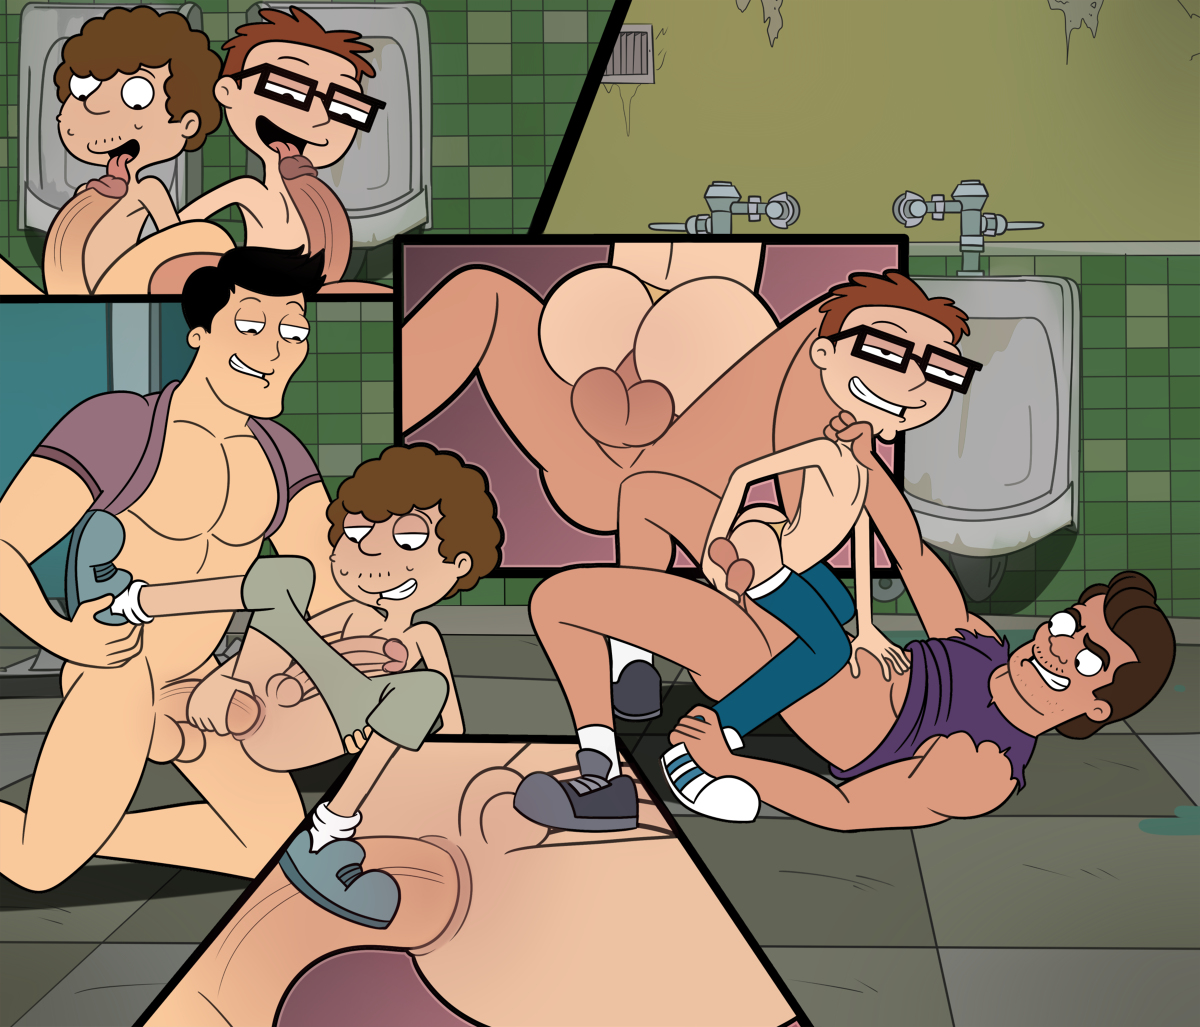 Best gay images ever made